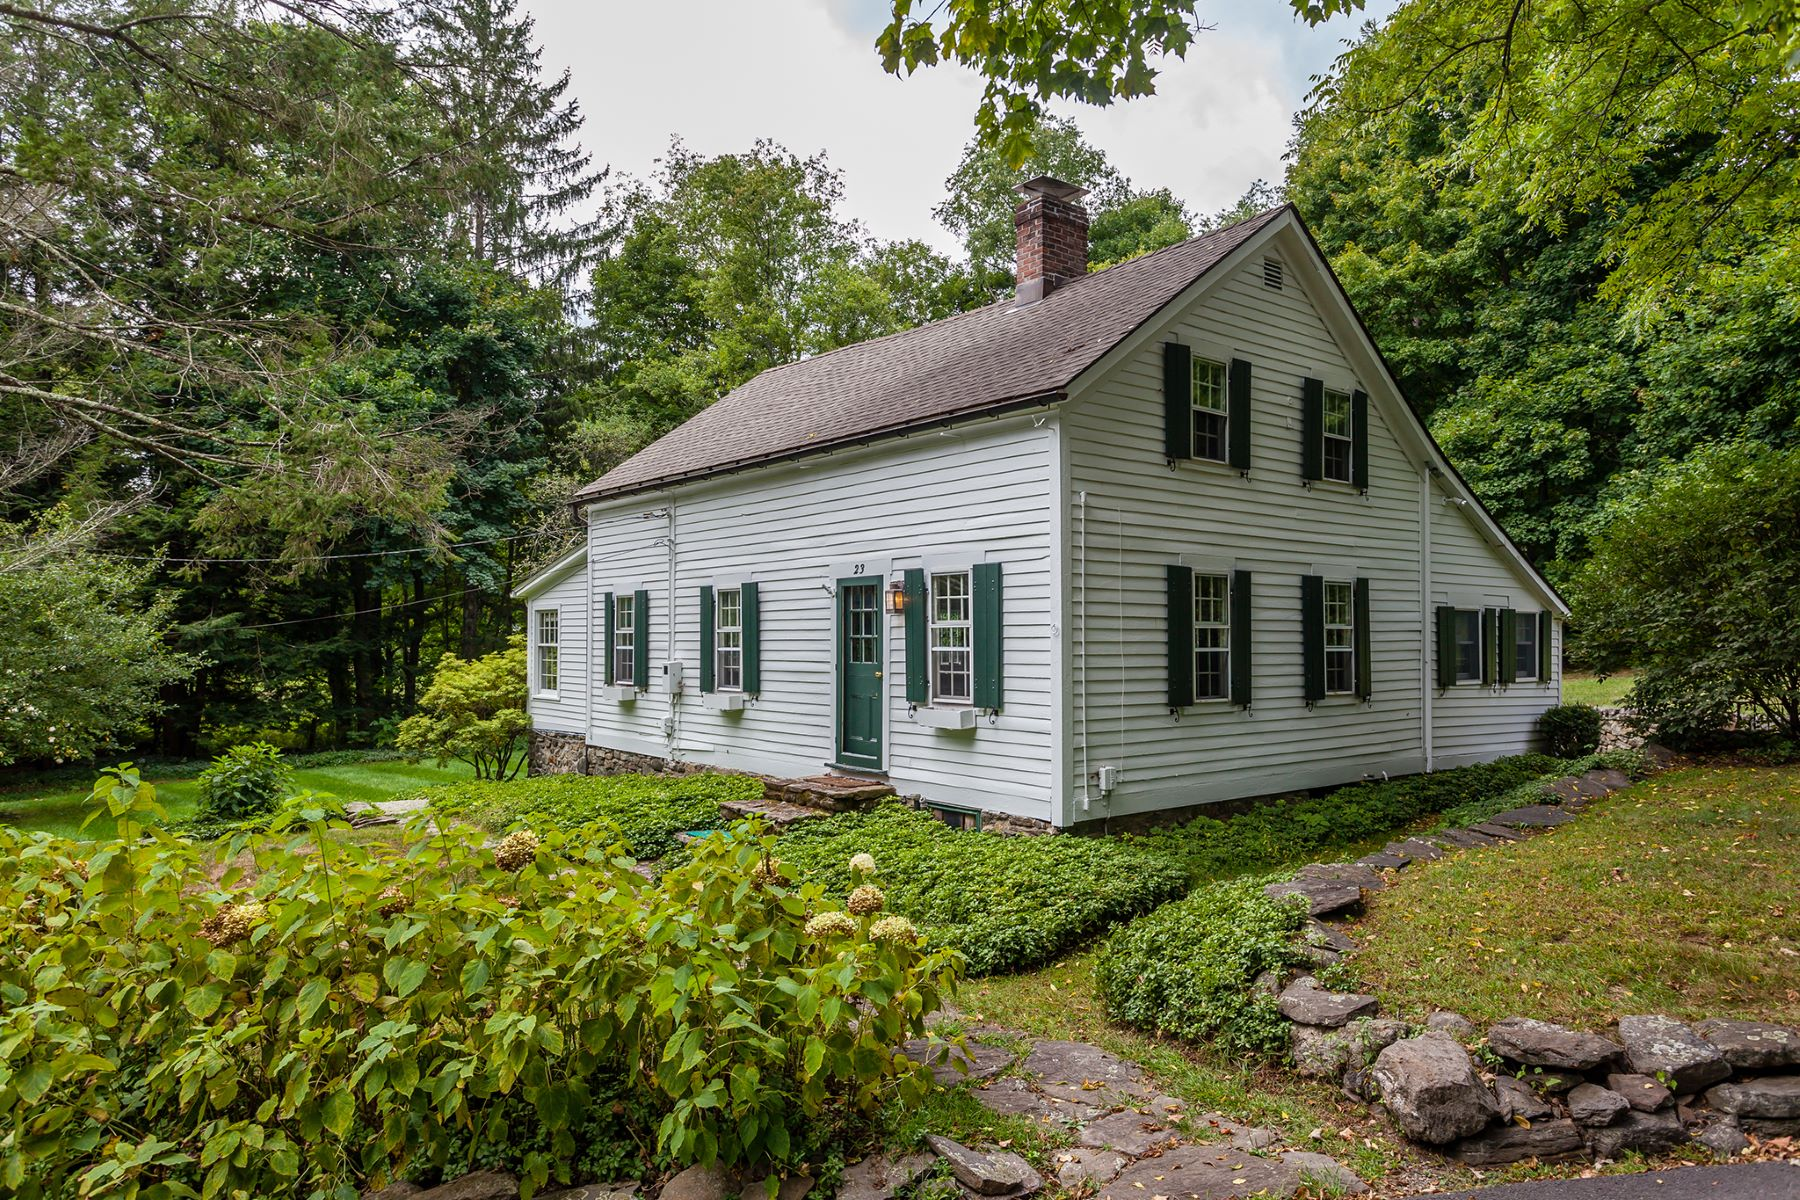 Single Family Home for Sale at Historic 1700's Cape 23 Couch Washington, Connecticut, 06777 United States